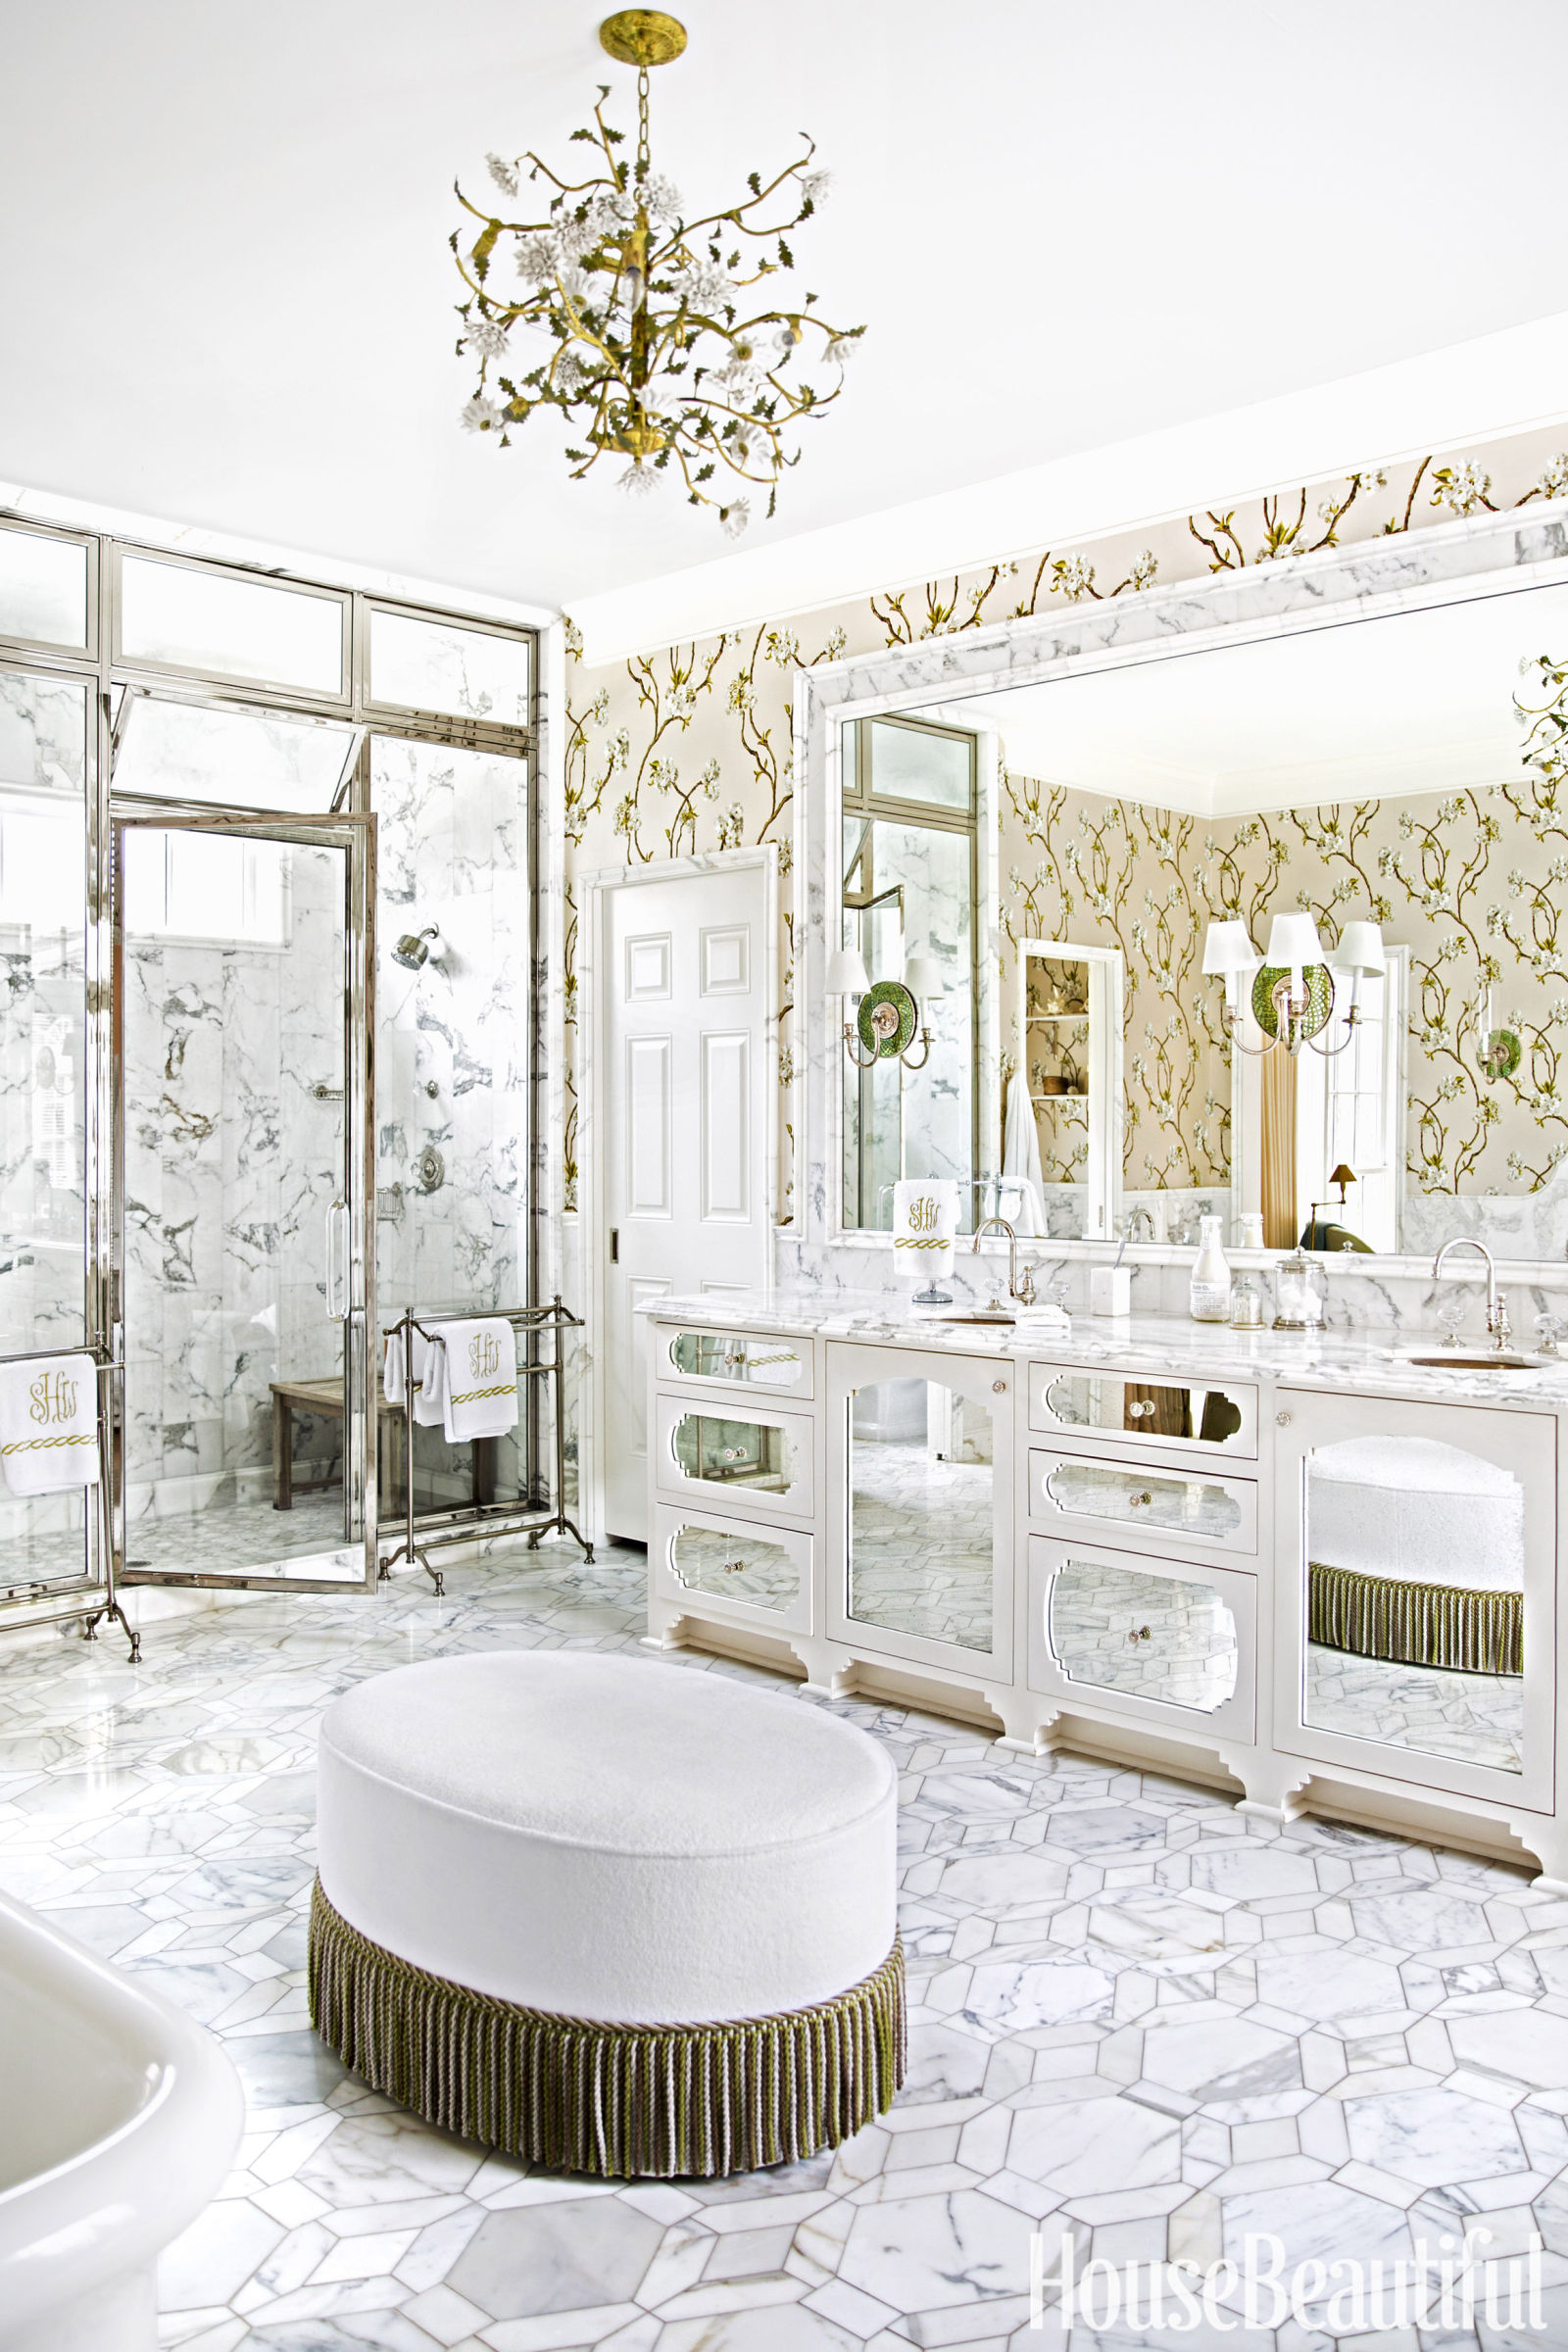 6 Beautiful Bathroom Designs That Will Leave You In Awe – Loft ...